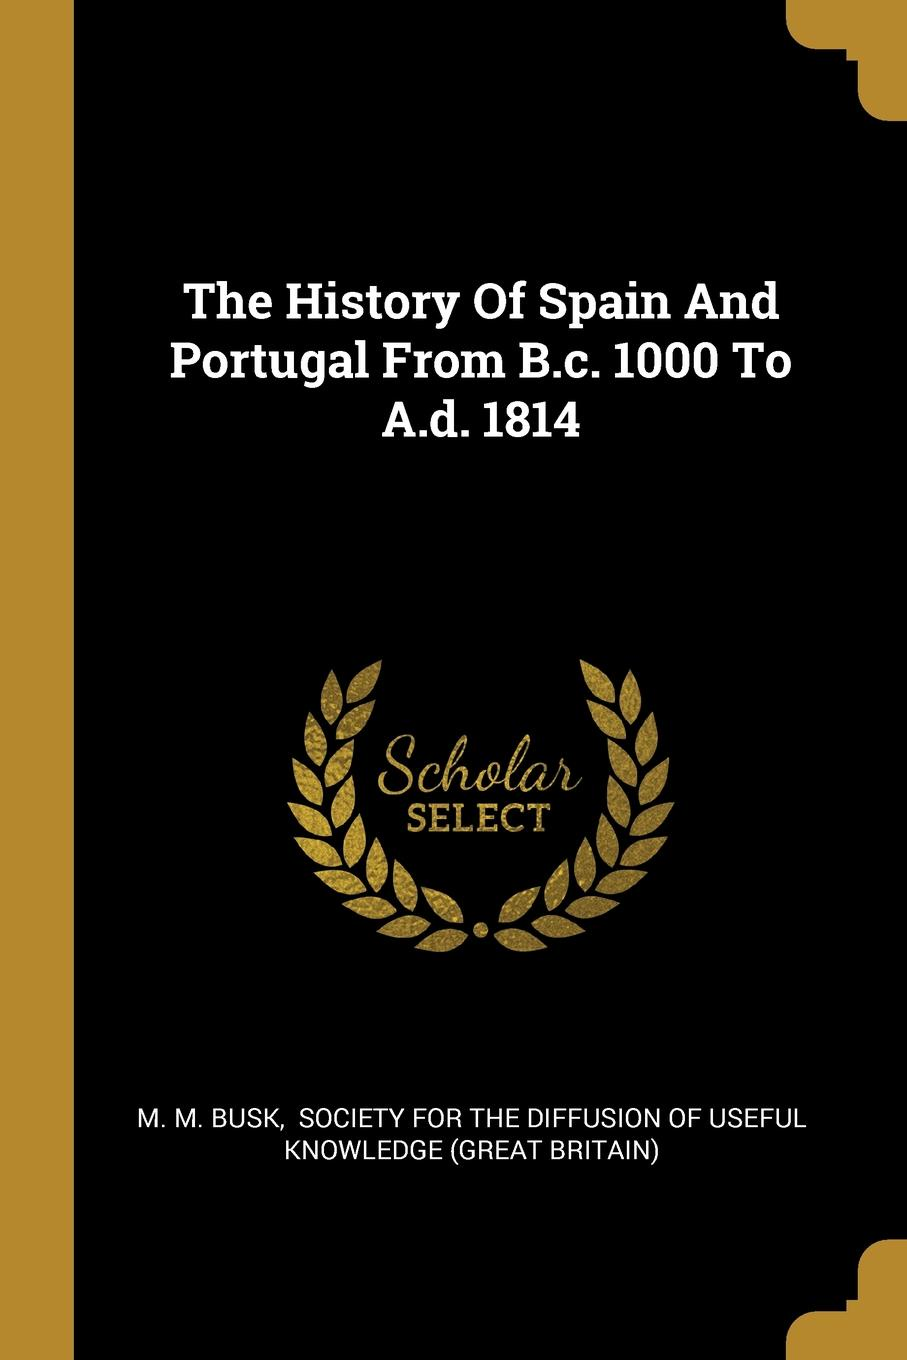 M. M. Busk The History Of Spain And Portugal From B.c. 1000 To A.d. 1814